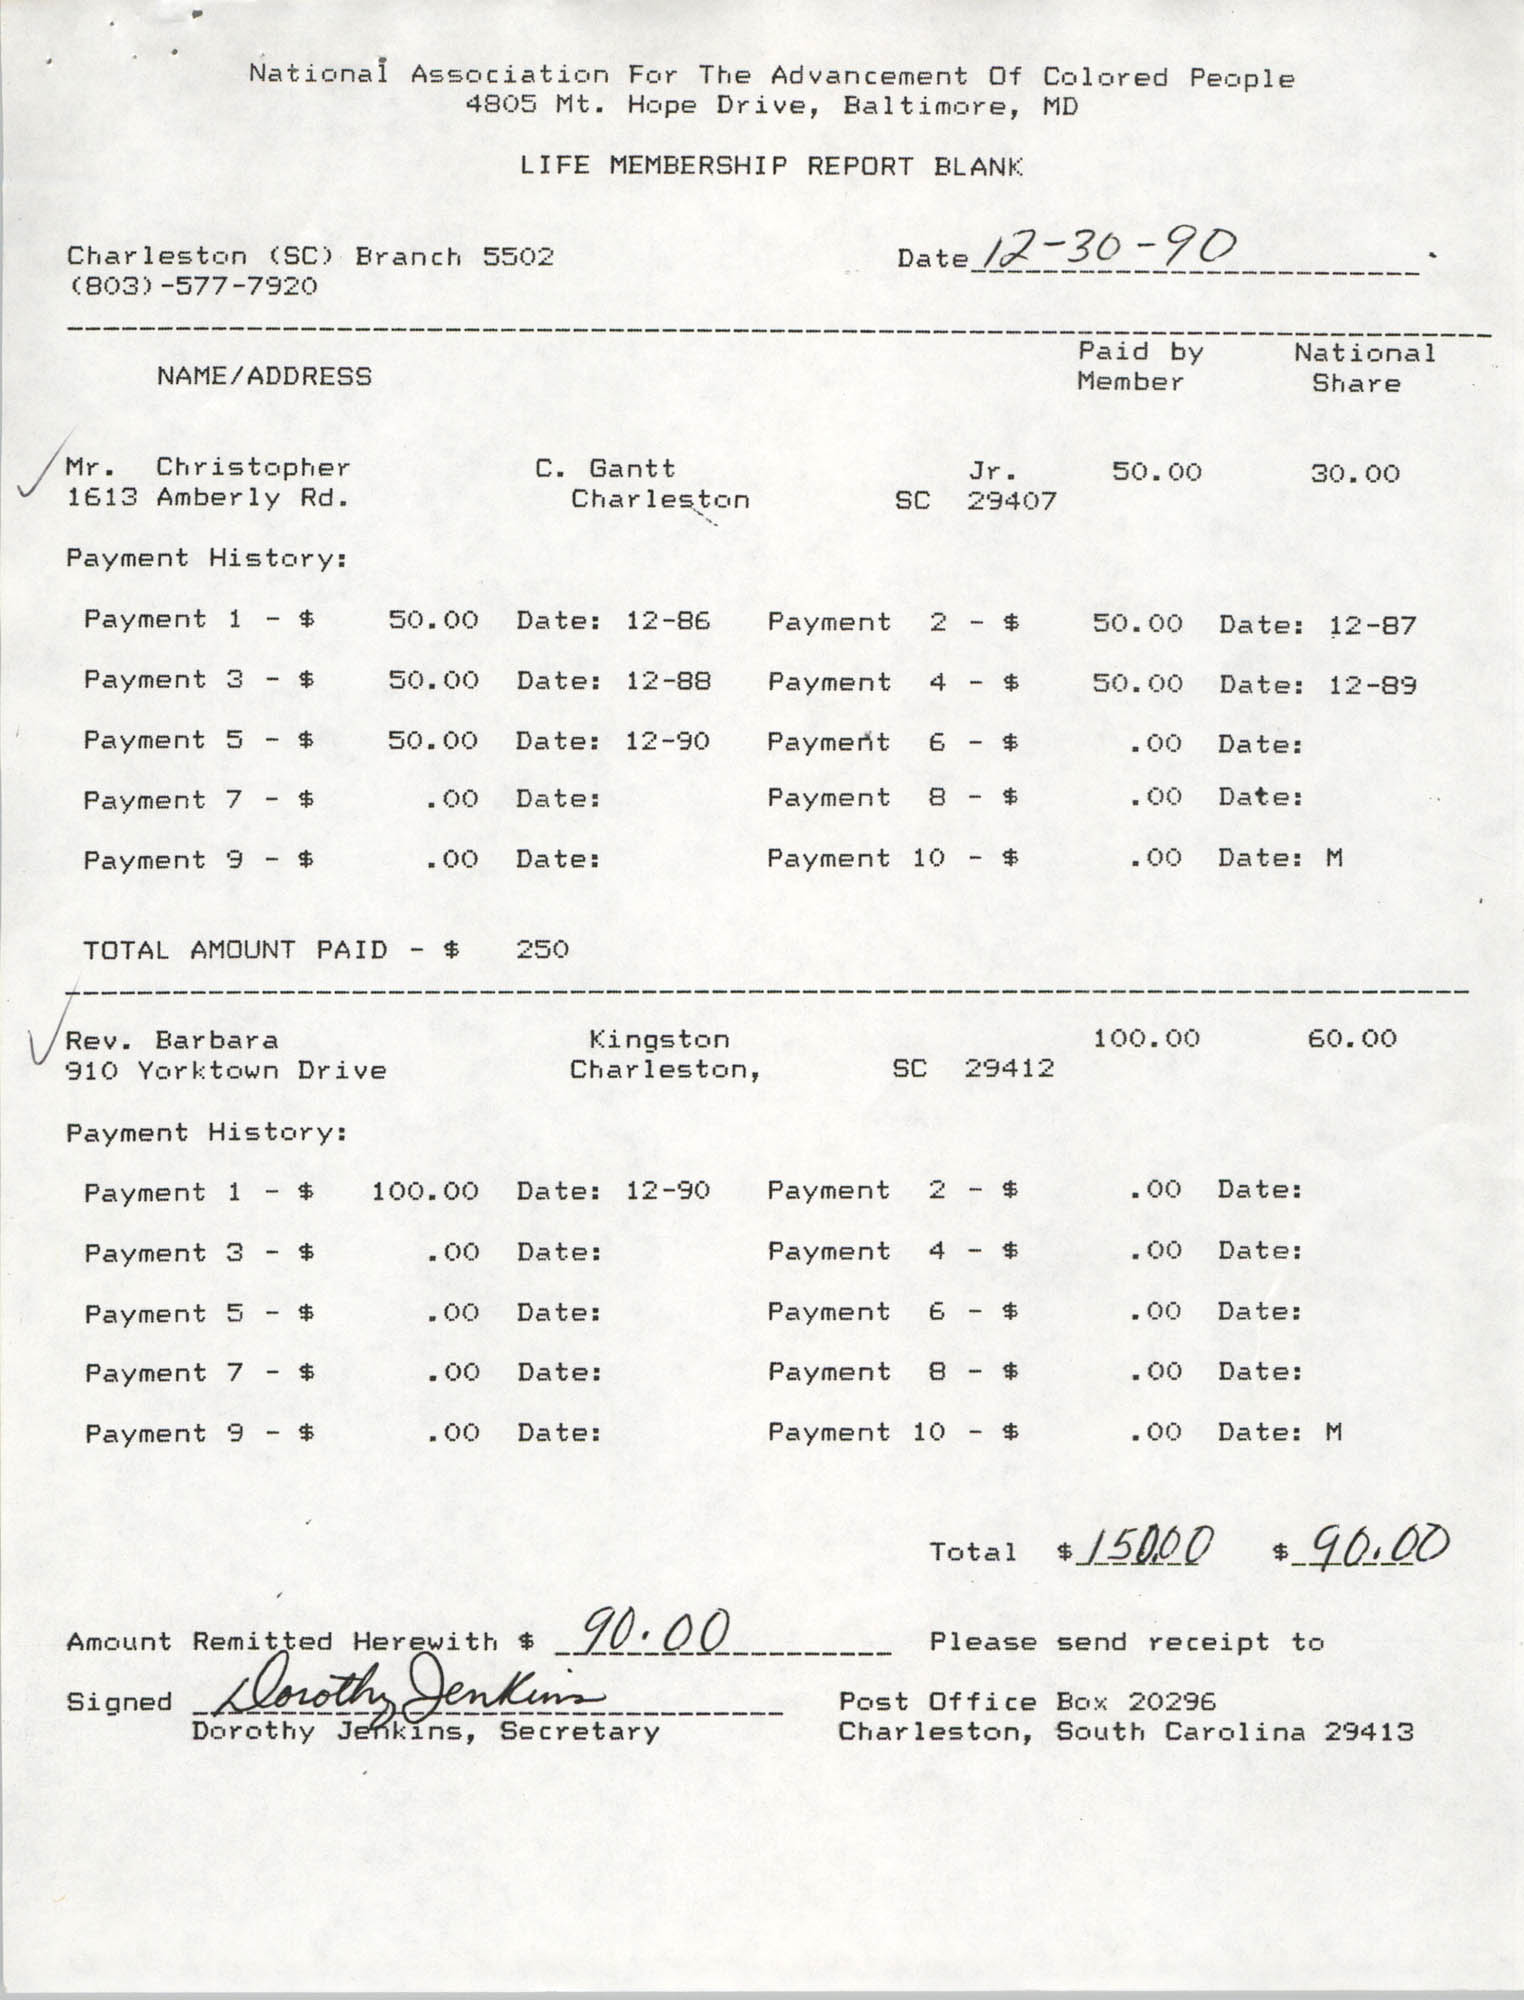 Life Membership Report Blank, Charleston Branch of the NAACP, Dorothy Jenkins, December 30, 1990